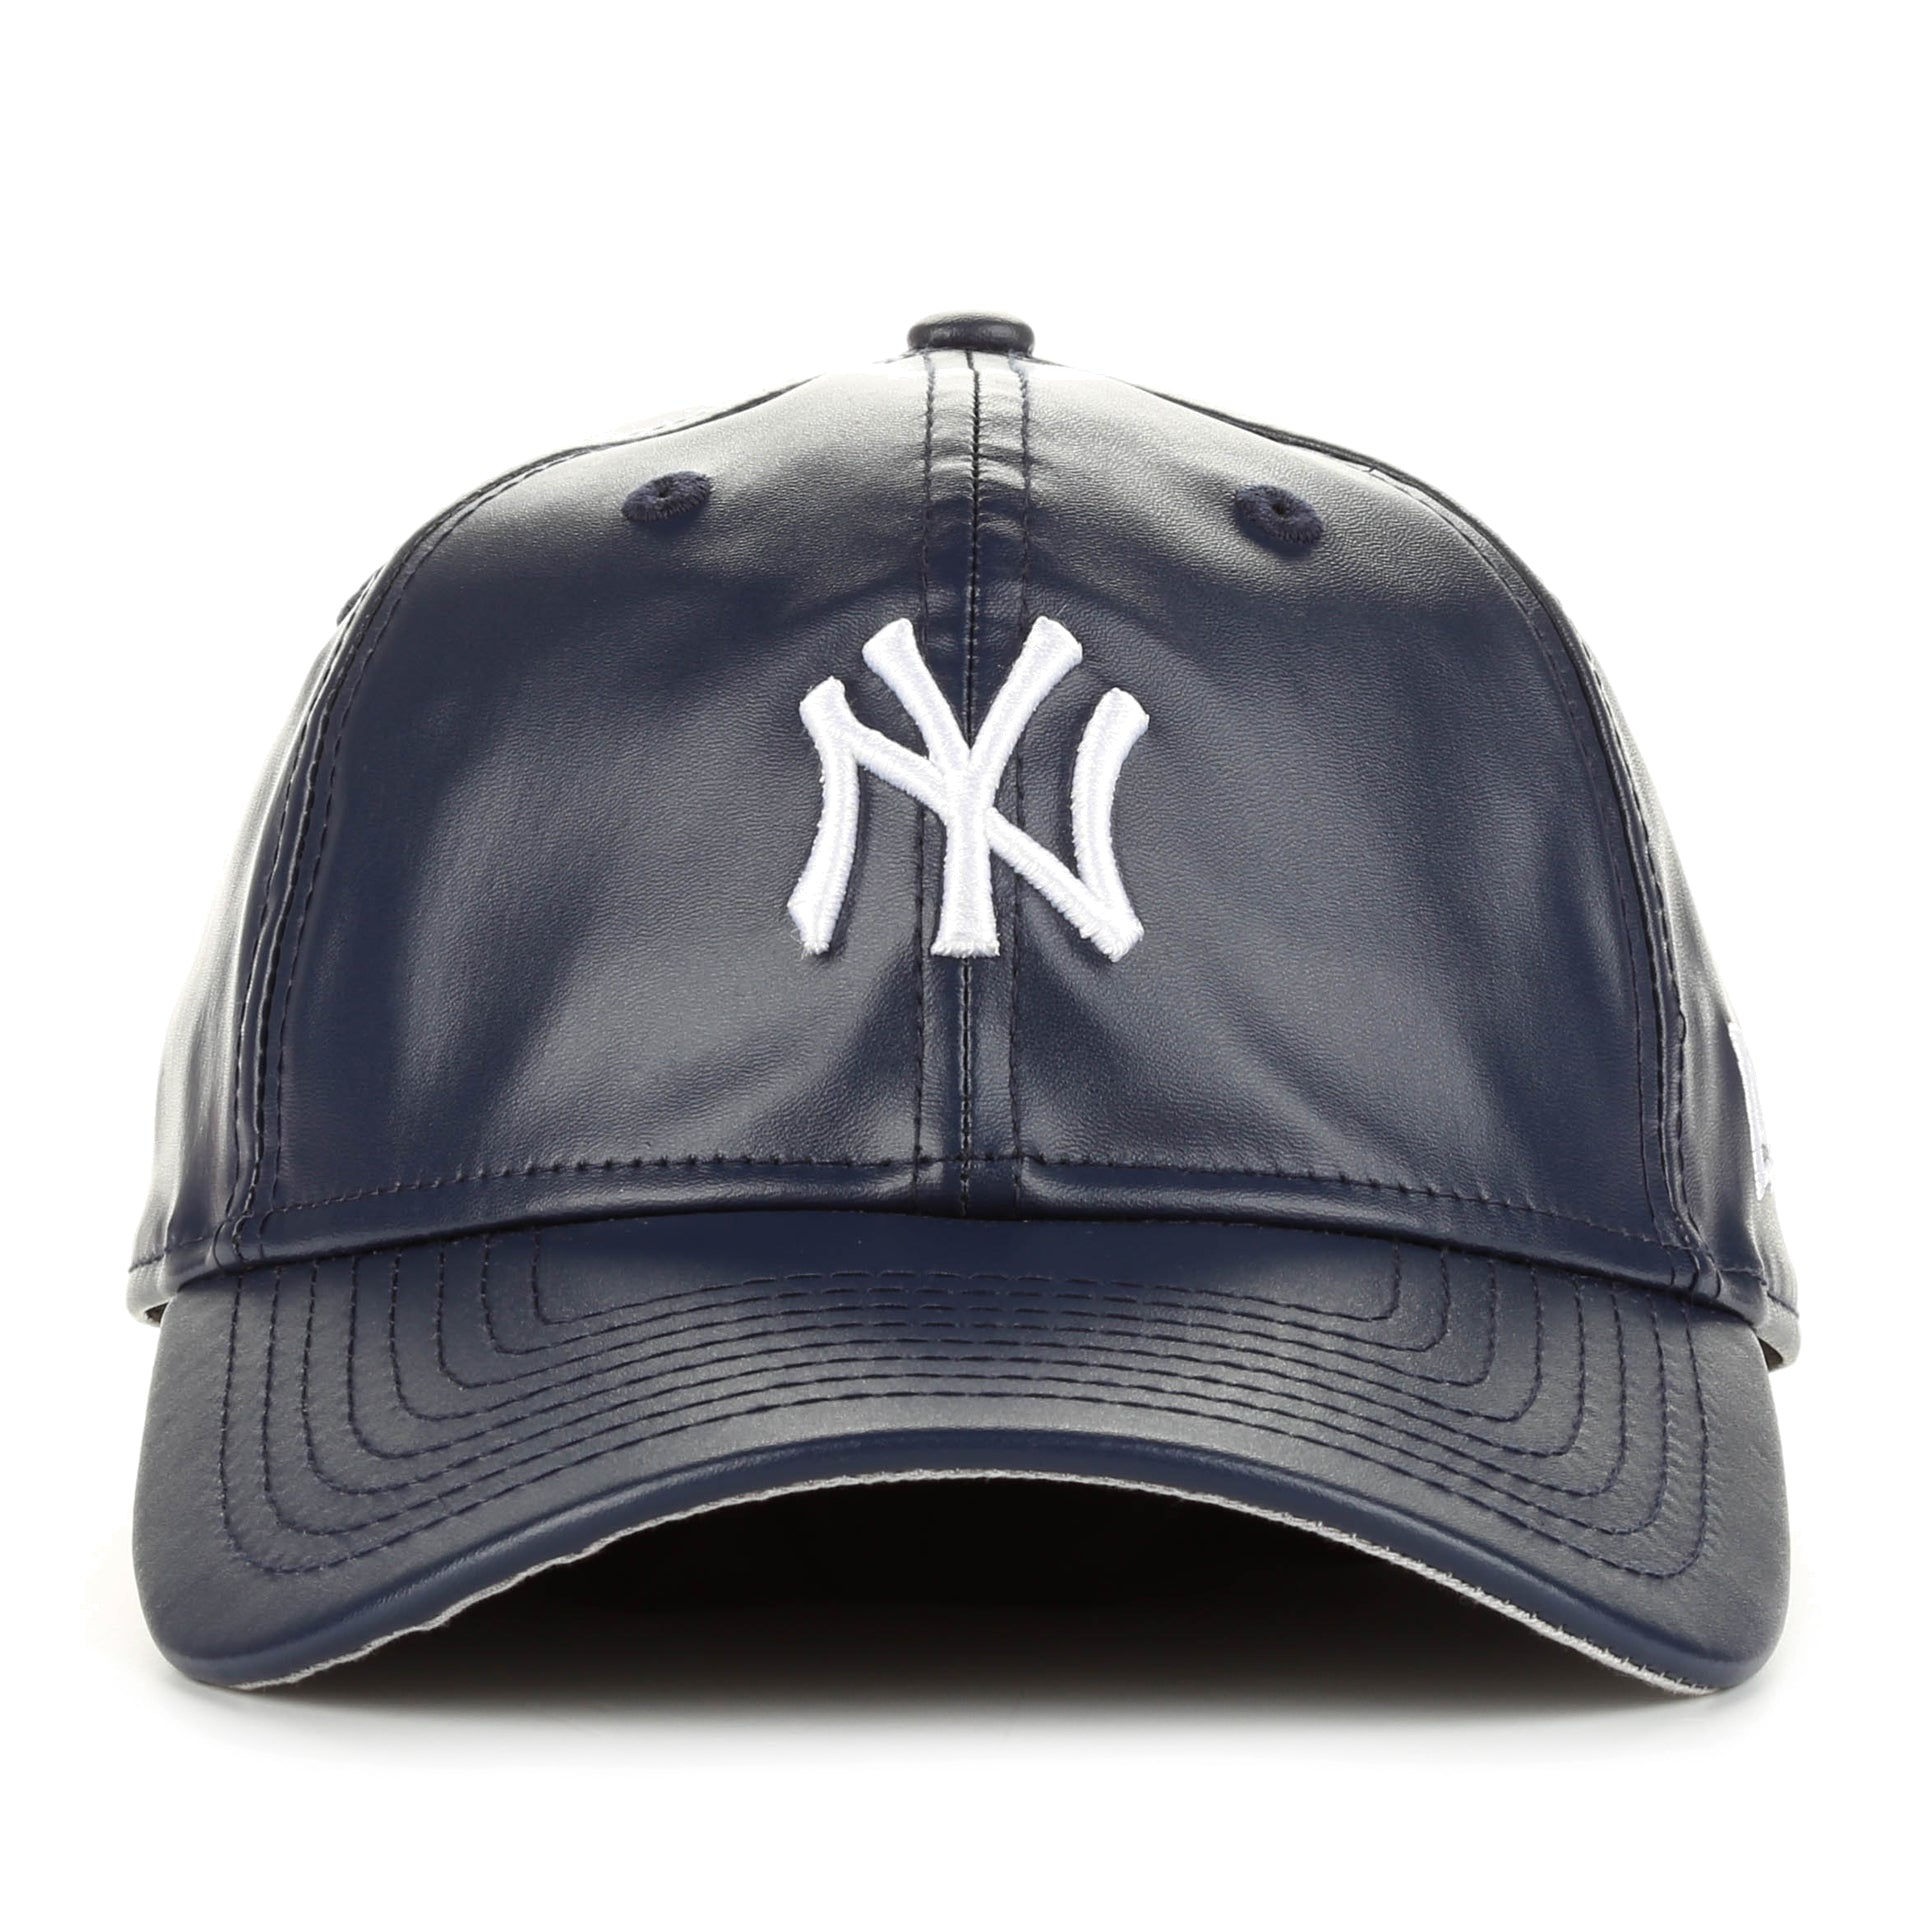 b52114733d40f New Era 9Twenty PU Leather Squad Cap - New York Yankees/Navy